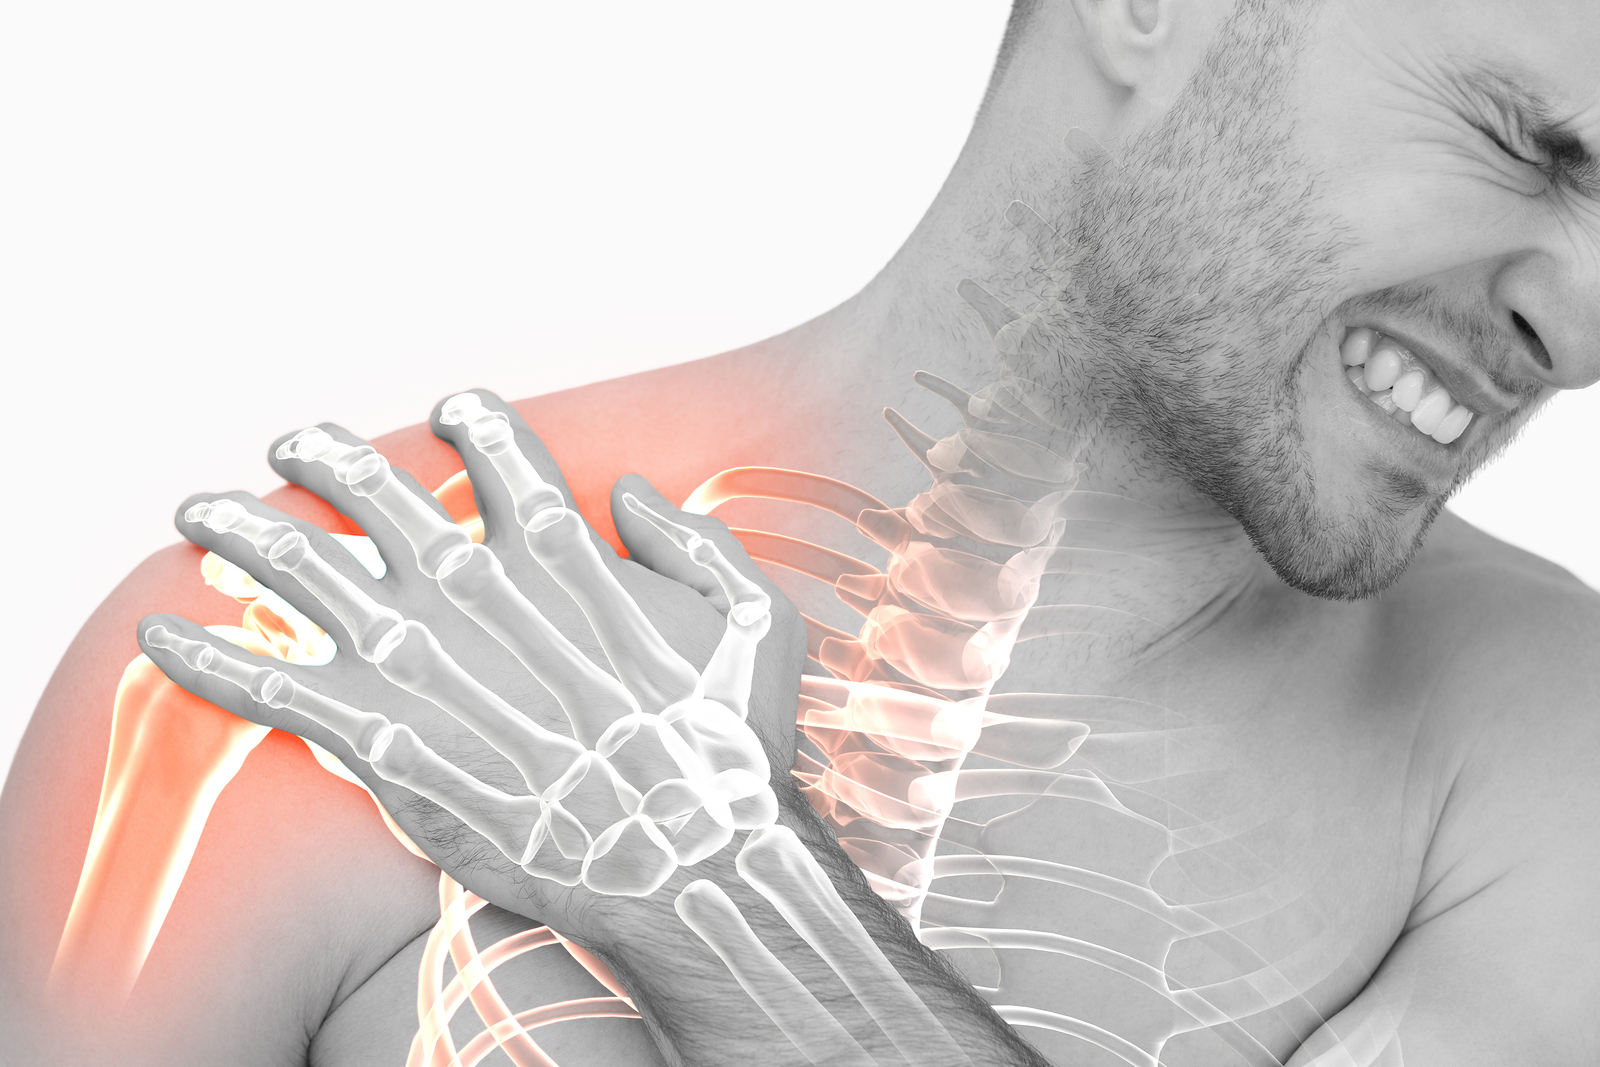 Thoracic Manual Therapy Is Not More Effective Than Placebo